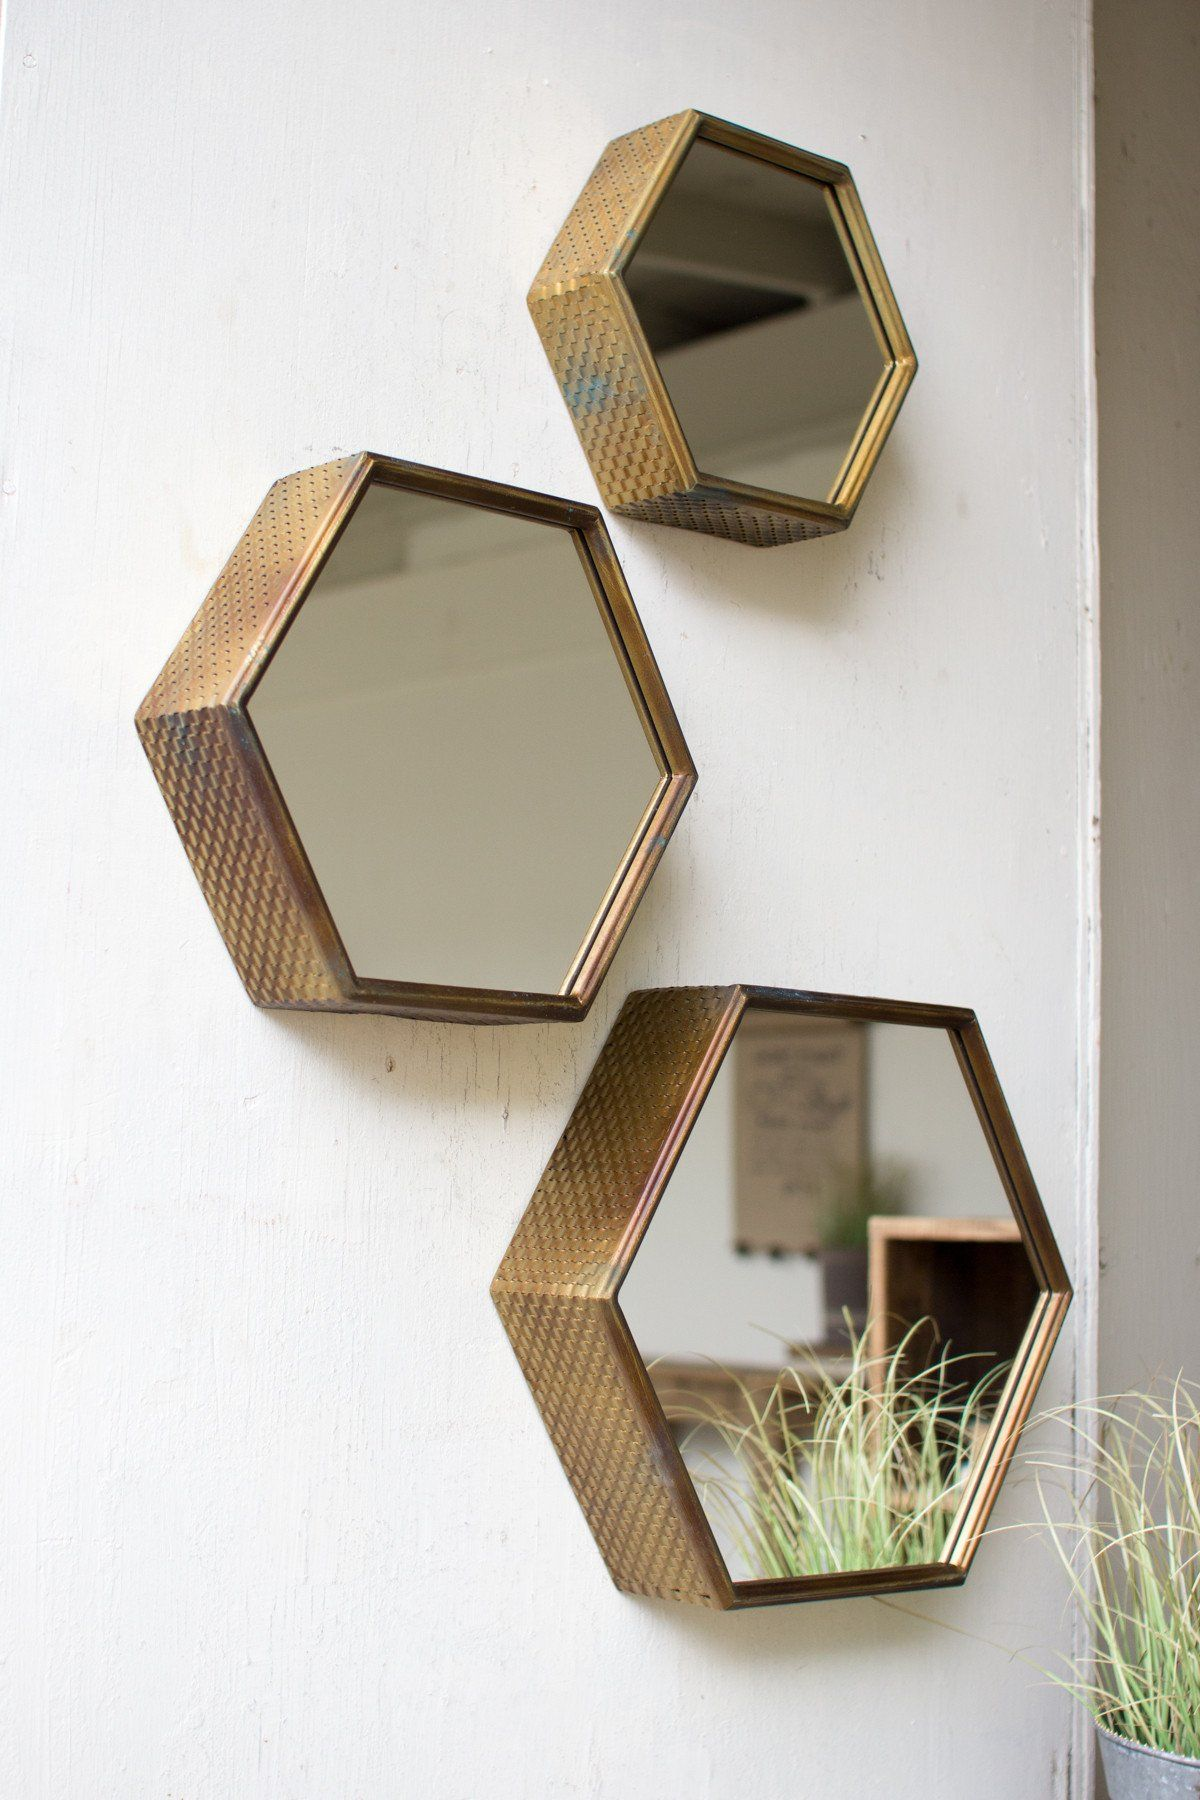 kalalou hexagon mirrors with antique brass finish set of 3 mirore mirror home decor. Black Bedroom Furniture Sets. Home Design Ideas